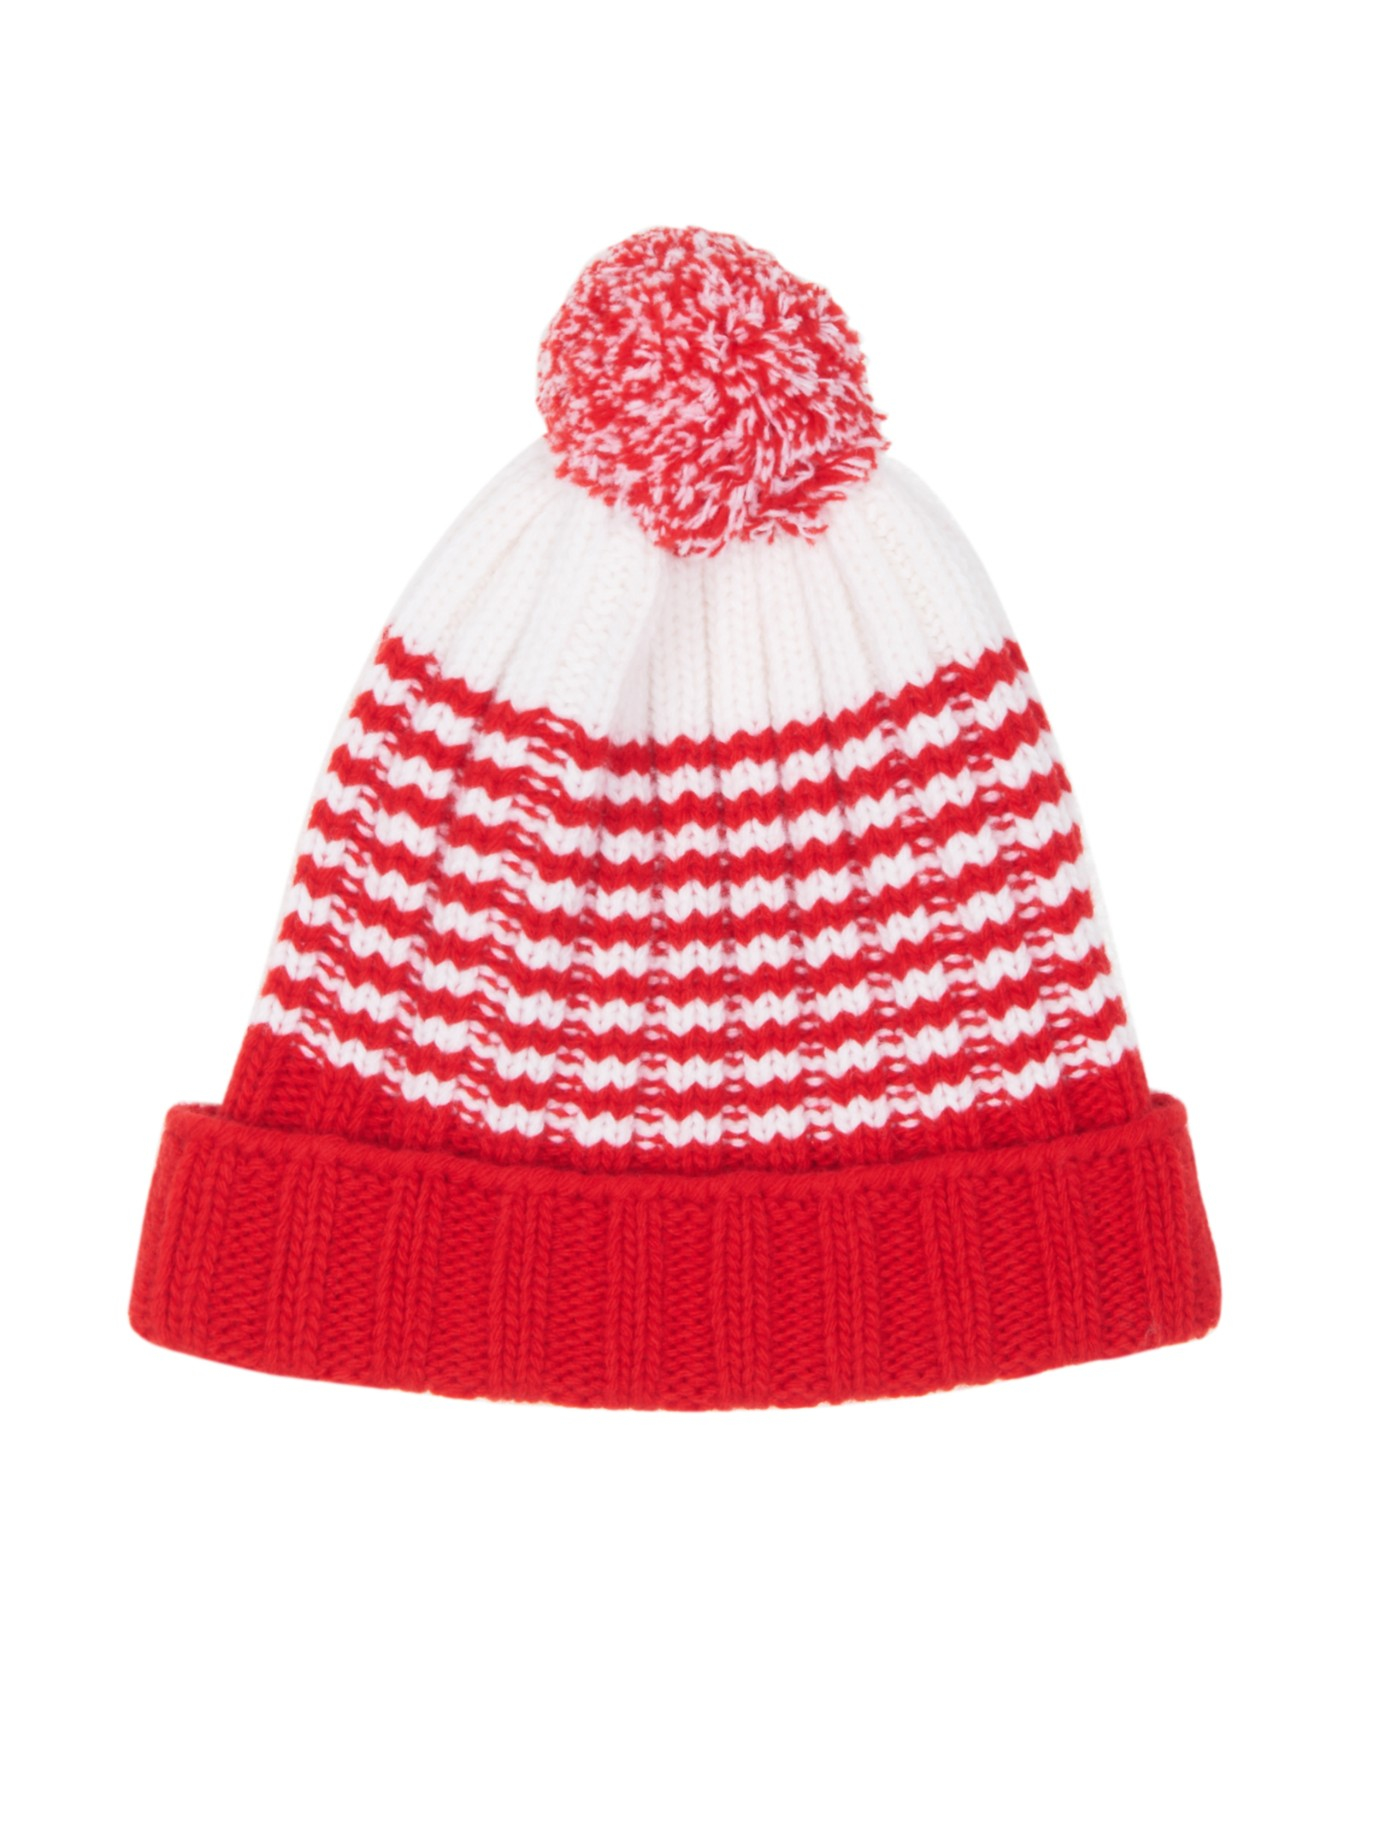 Lyst - Gucci Striped Wool Bobble Hat in Red 5797162d602